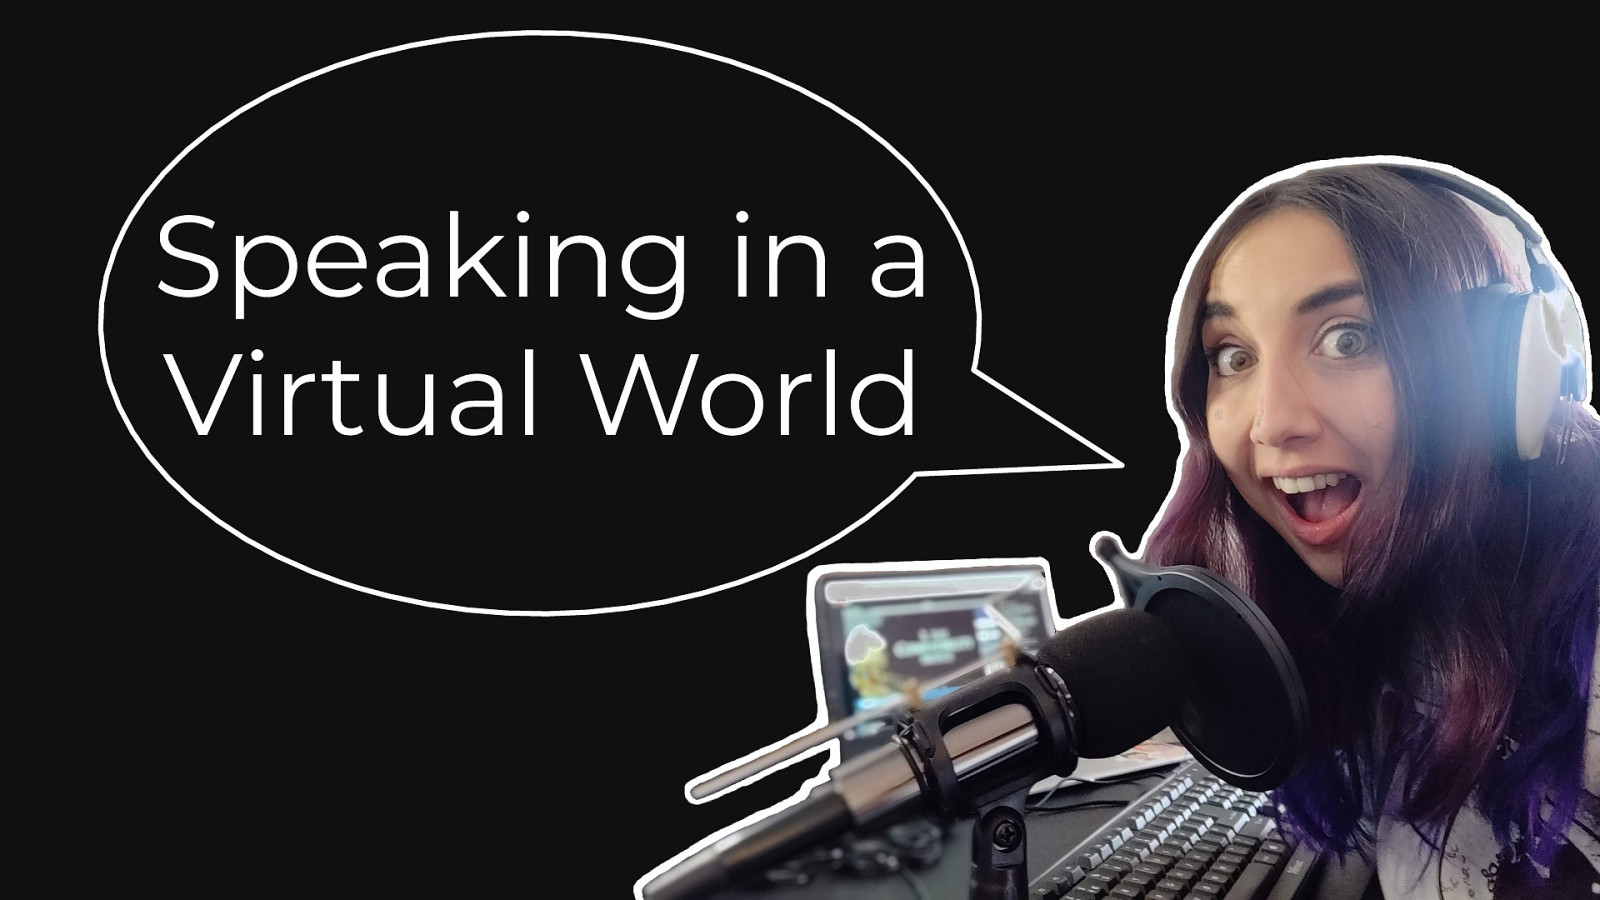 Speaking in a Virtual World